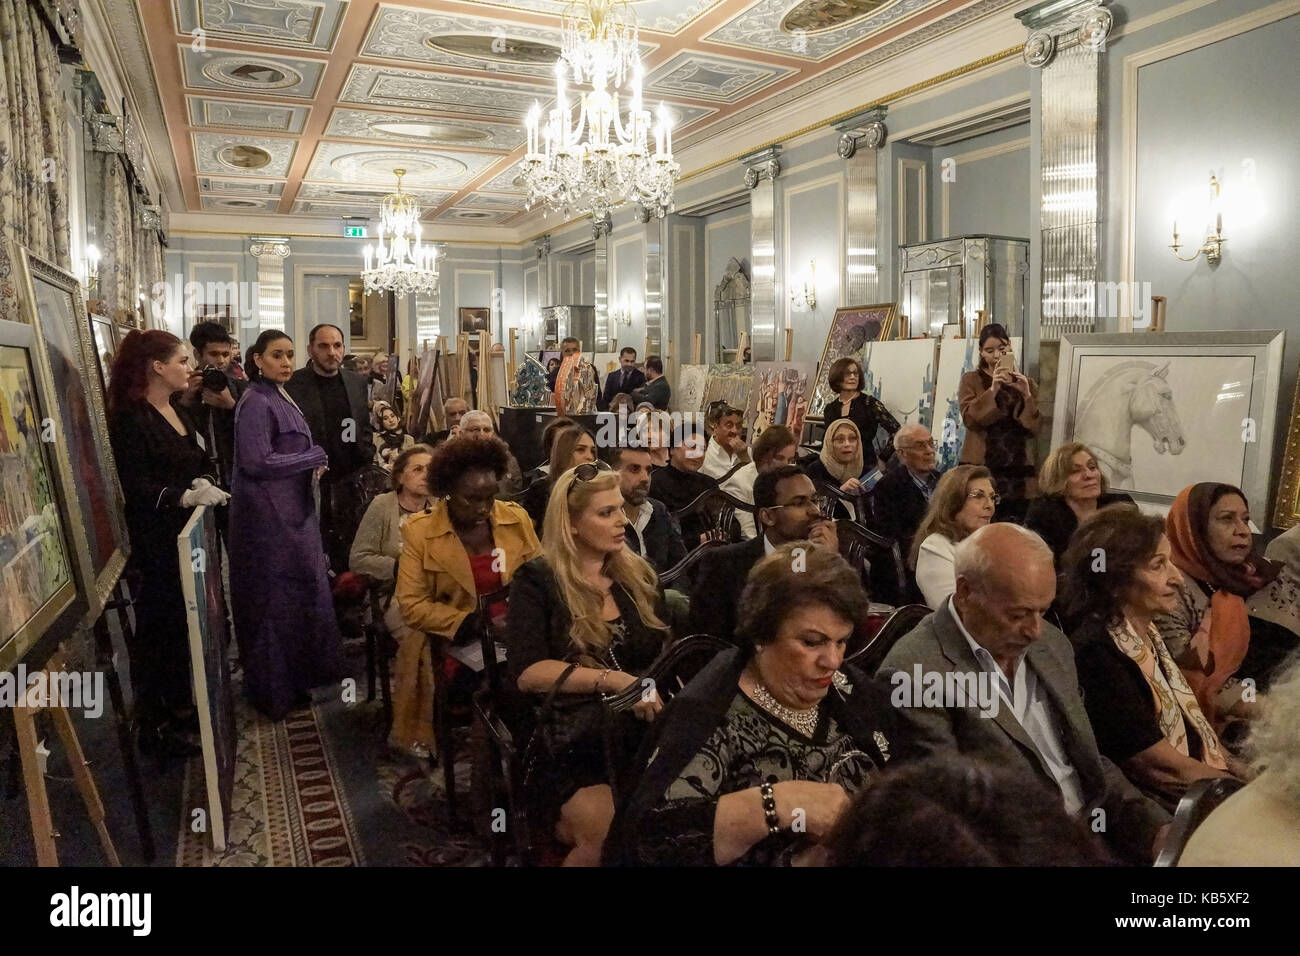 London, UK. 28th September, 2017. Konooz Fine Art Auction & Exhibition at the Lanesborough Hotel. The WGSF, - Stock Image